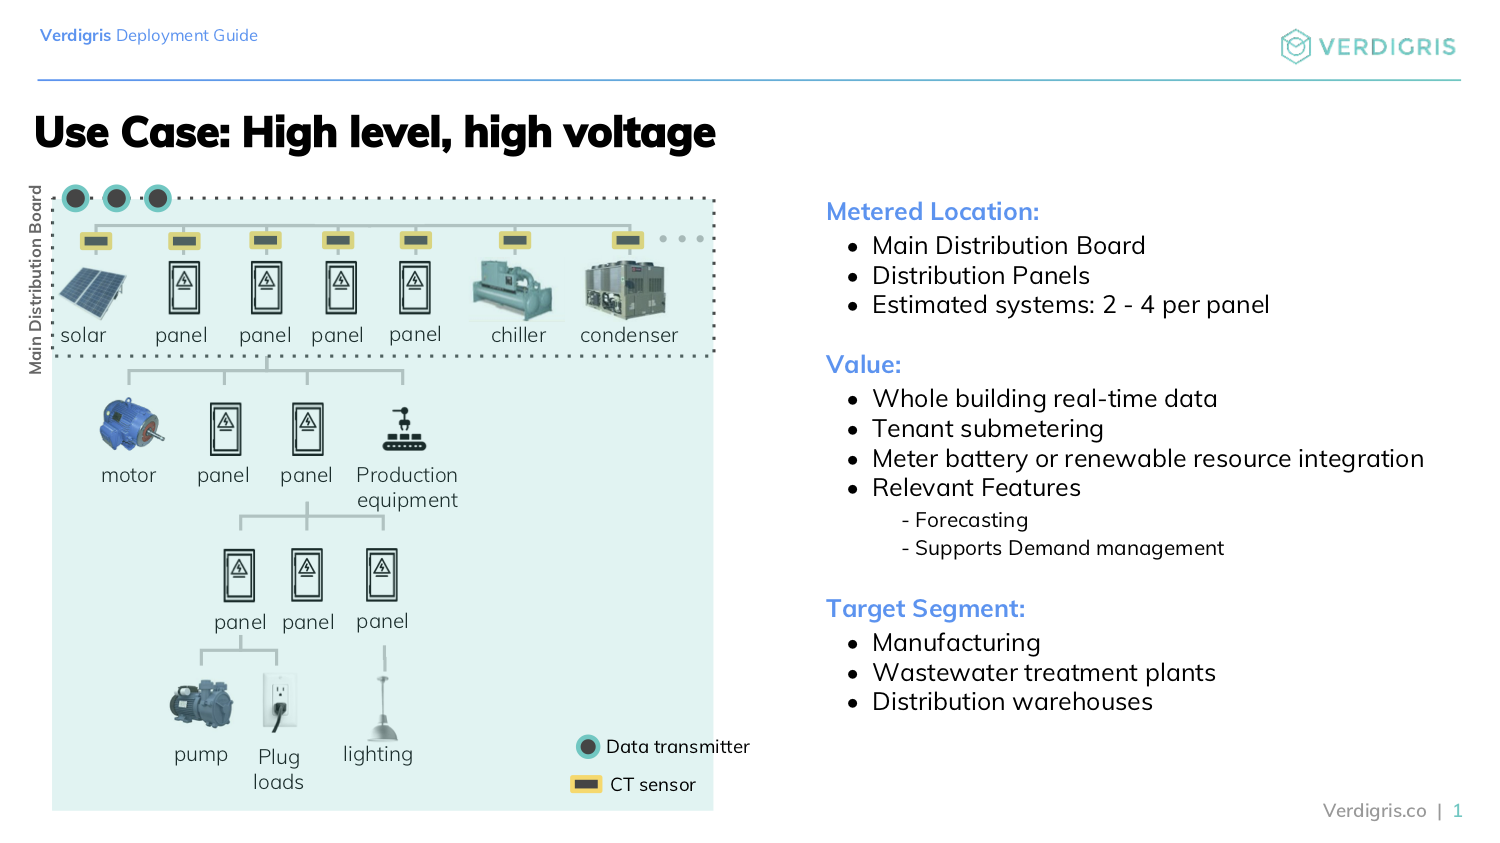 Use Case: high level, high voltage